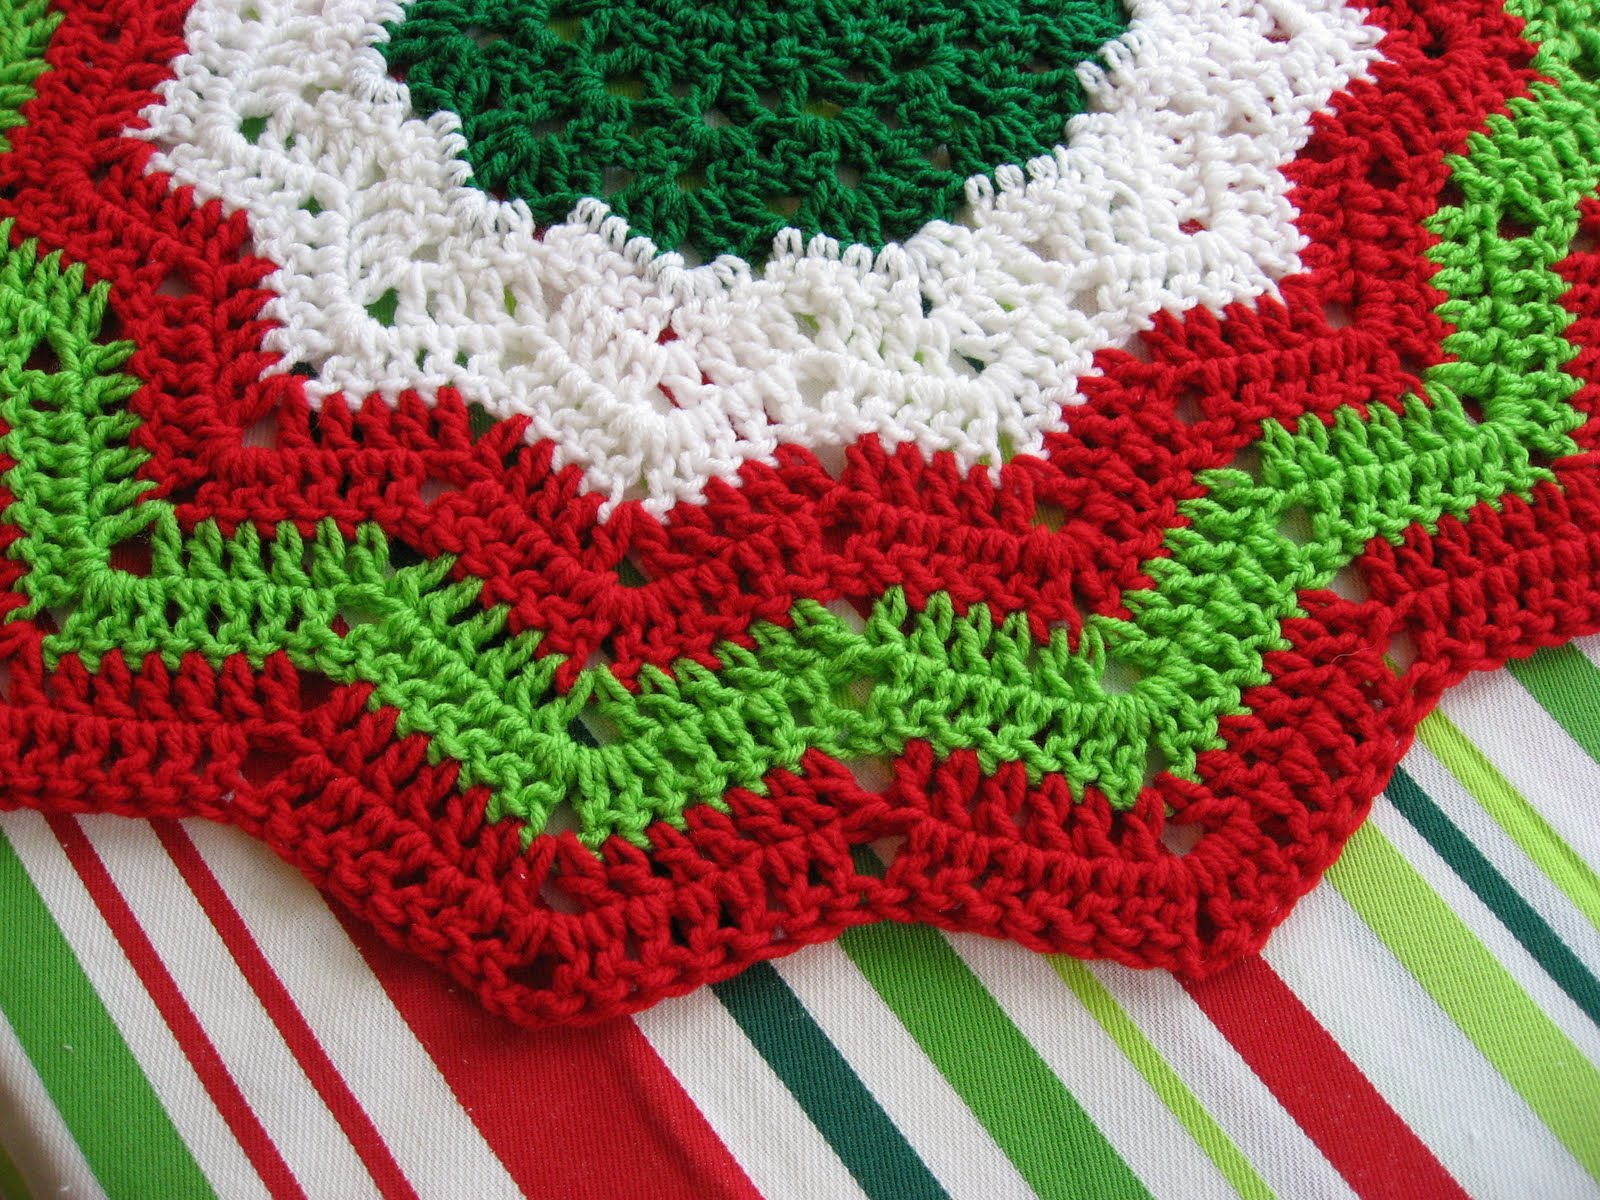 CROCHETED CHRISTMAS TREE SKIRT PATTERNS